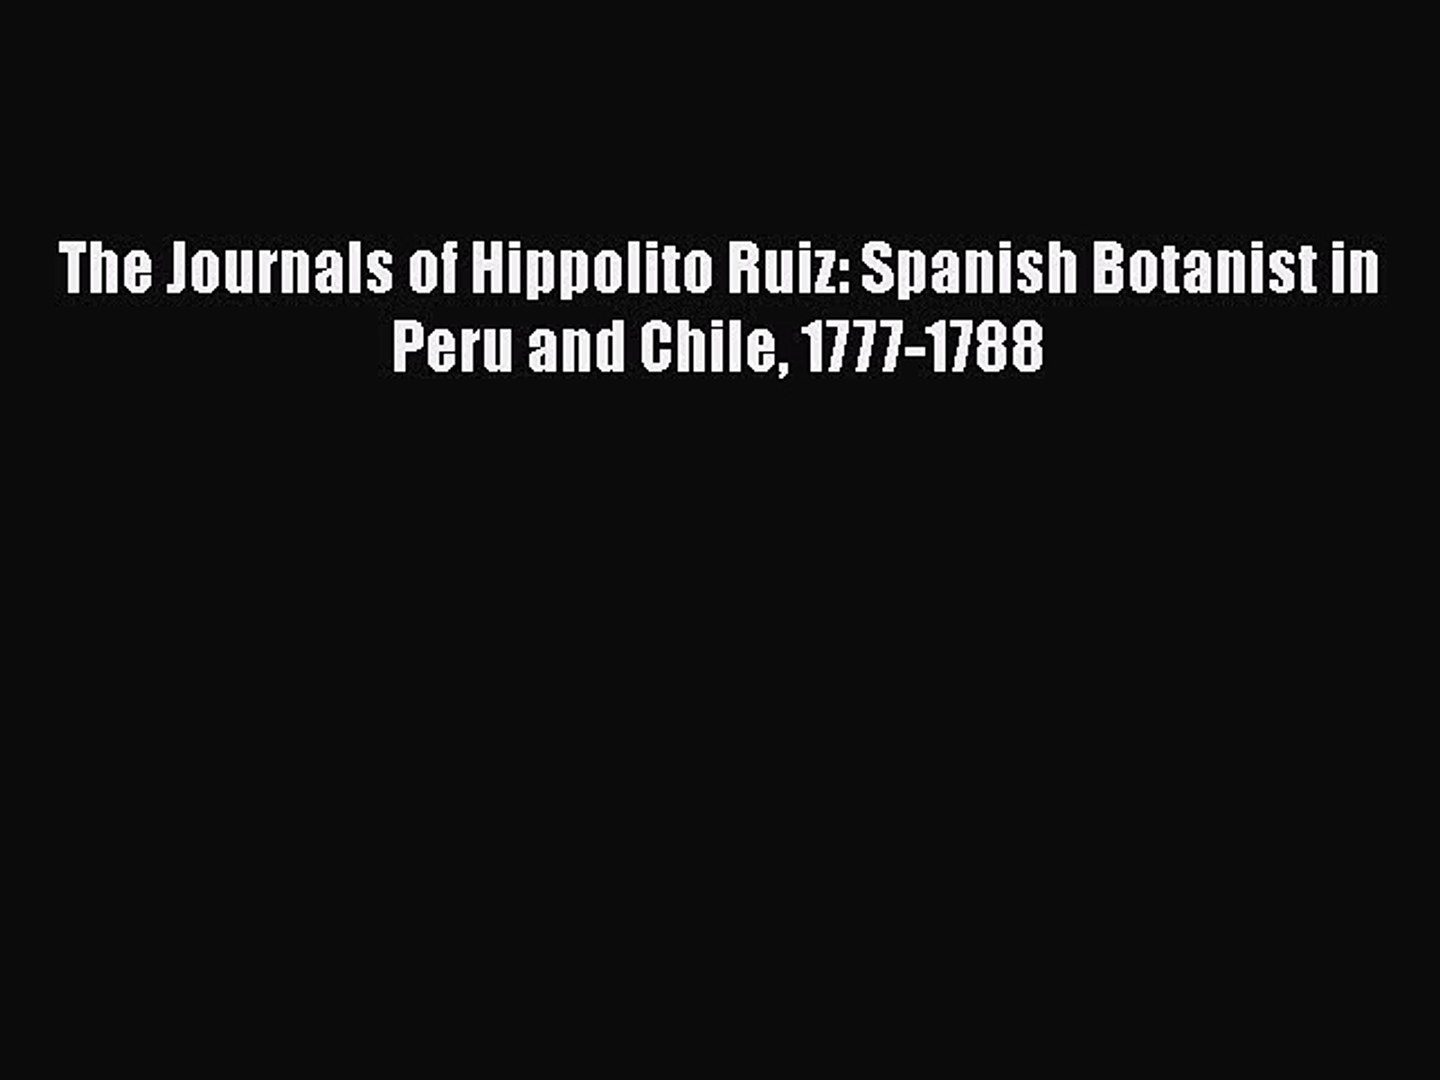 Download Books The Journals of Hippolito Ruiz: Spanish Botanist in Peru and Chile 1777-1788